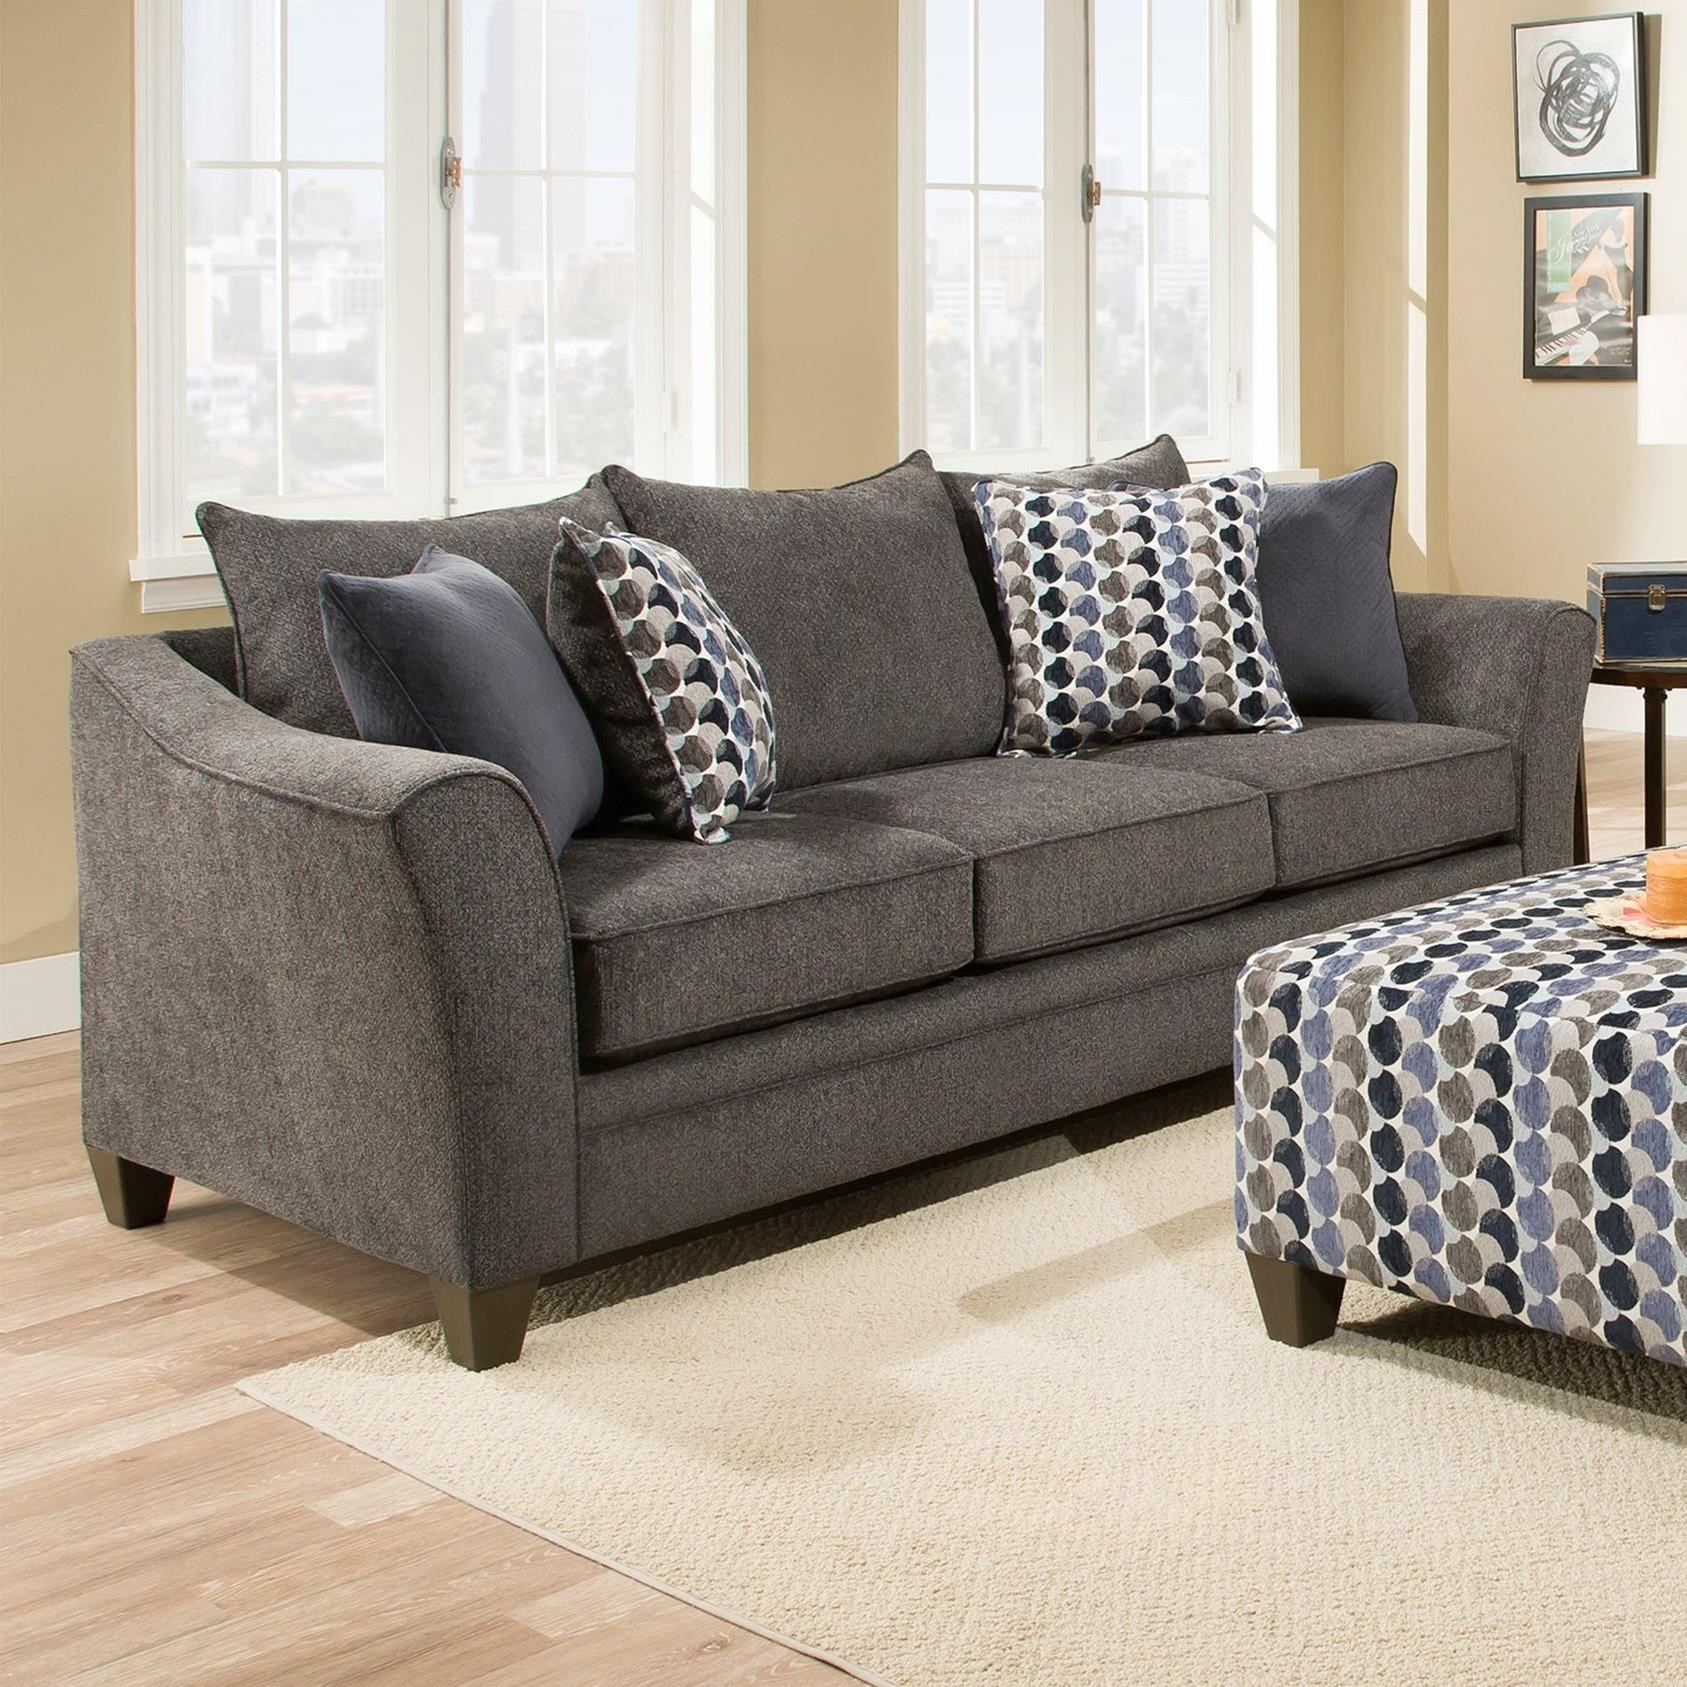 Umber Kiara 6485Sofa Transitional Sofa With Flared Arms | Efo Intended For Kiara Sofa Chairs (Photo 7 of 20)